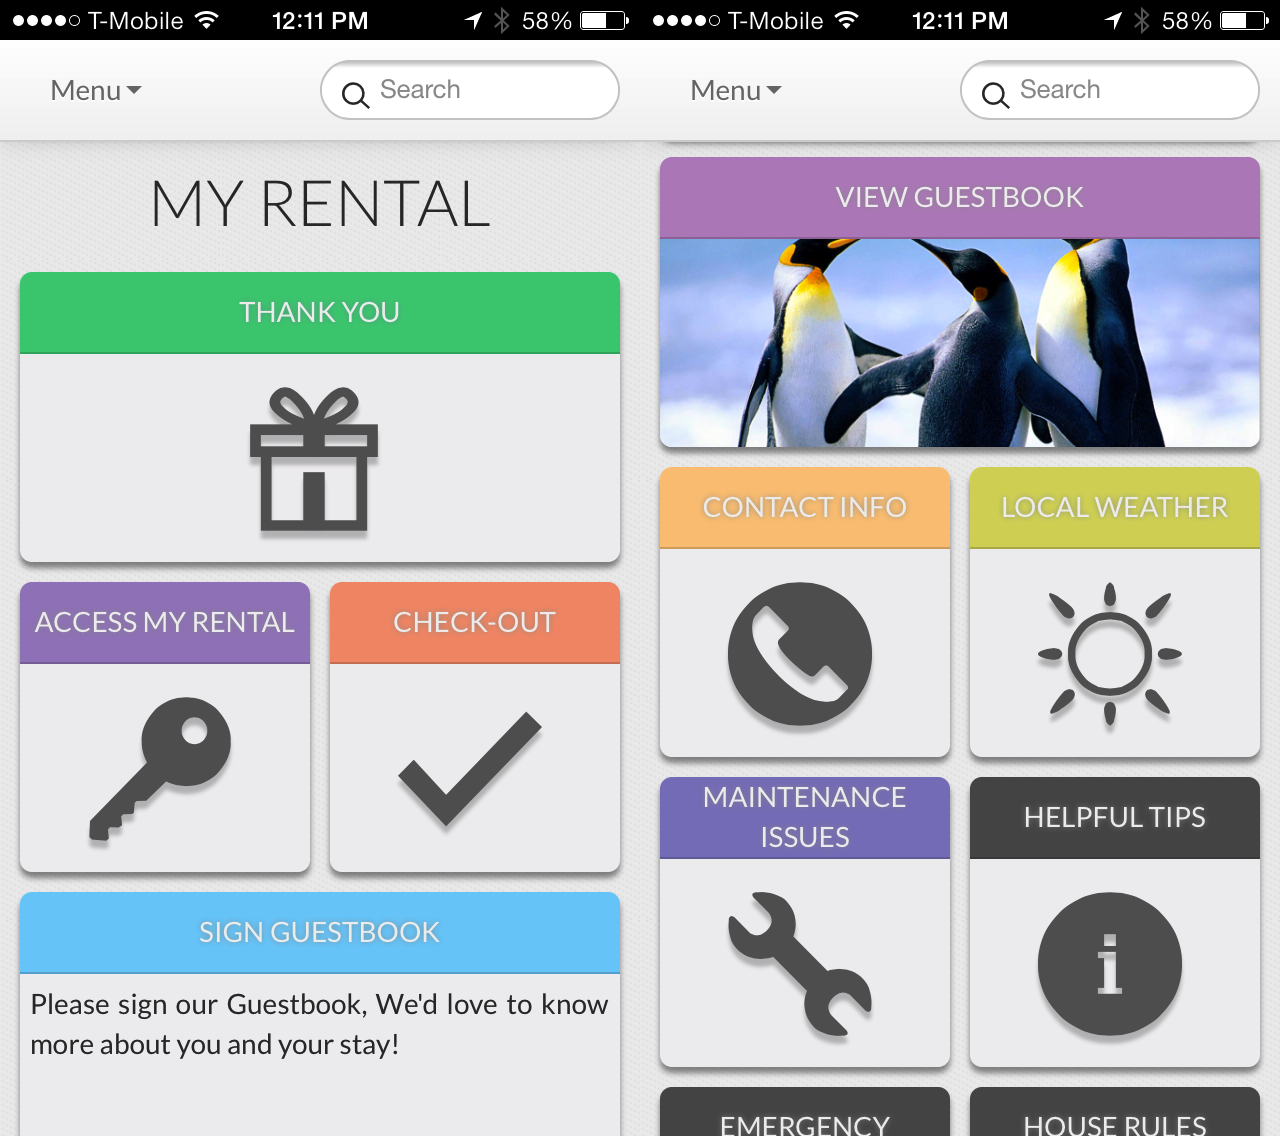 acquisition, the Glad to Have You app will be integrated with HomeAway ...